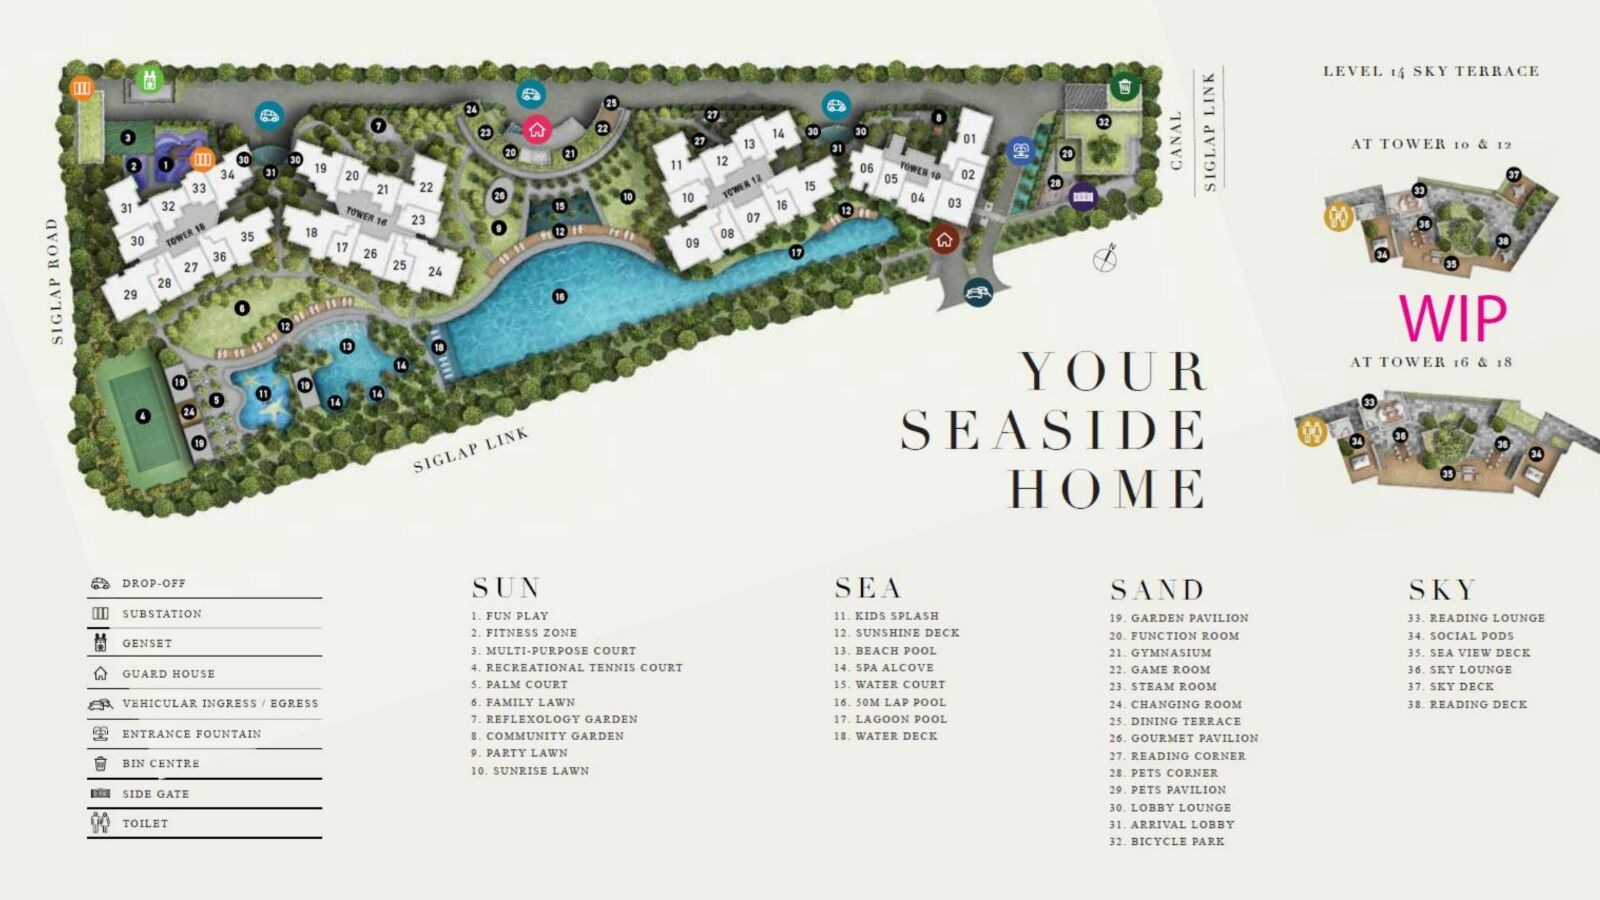 Seaside site plan